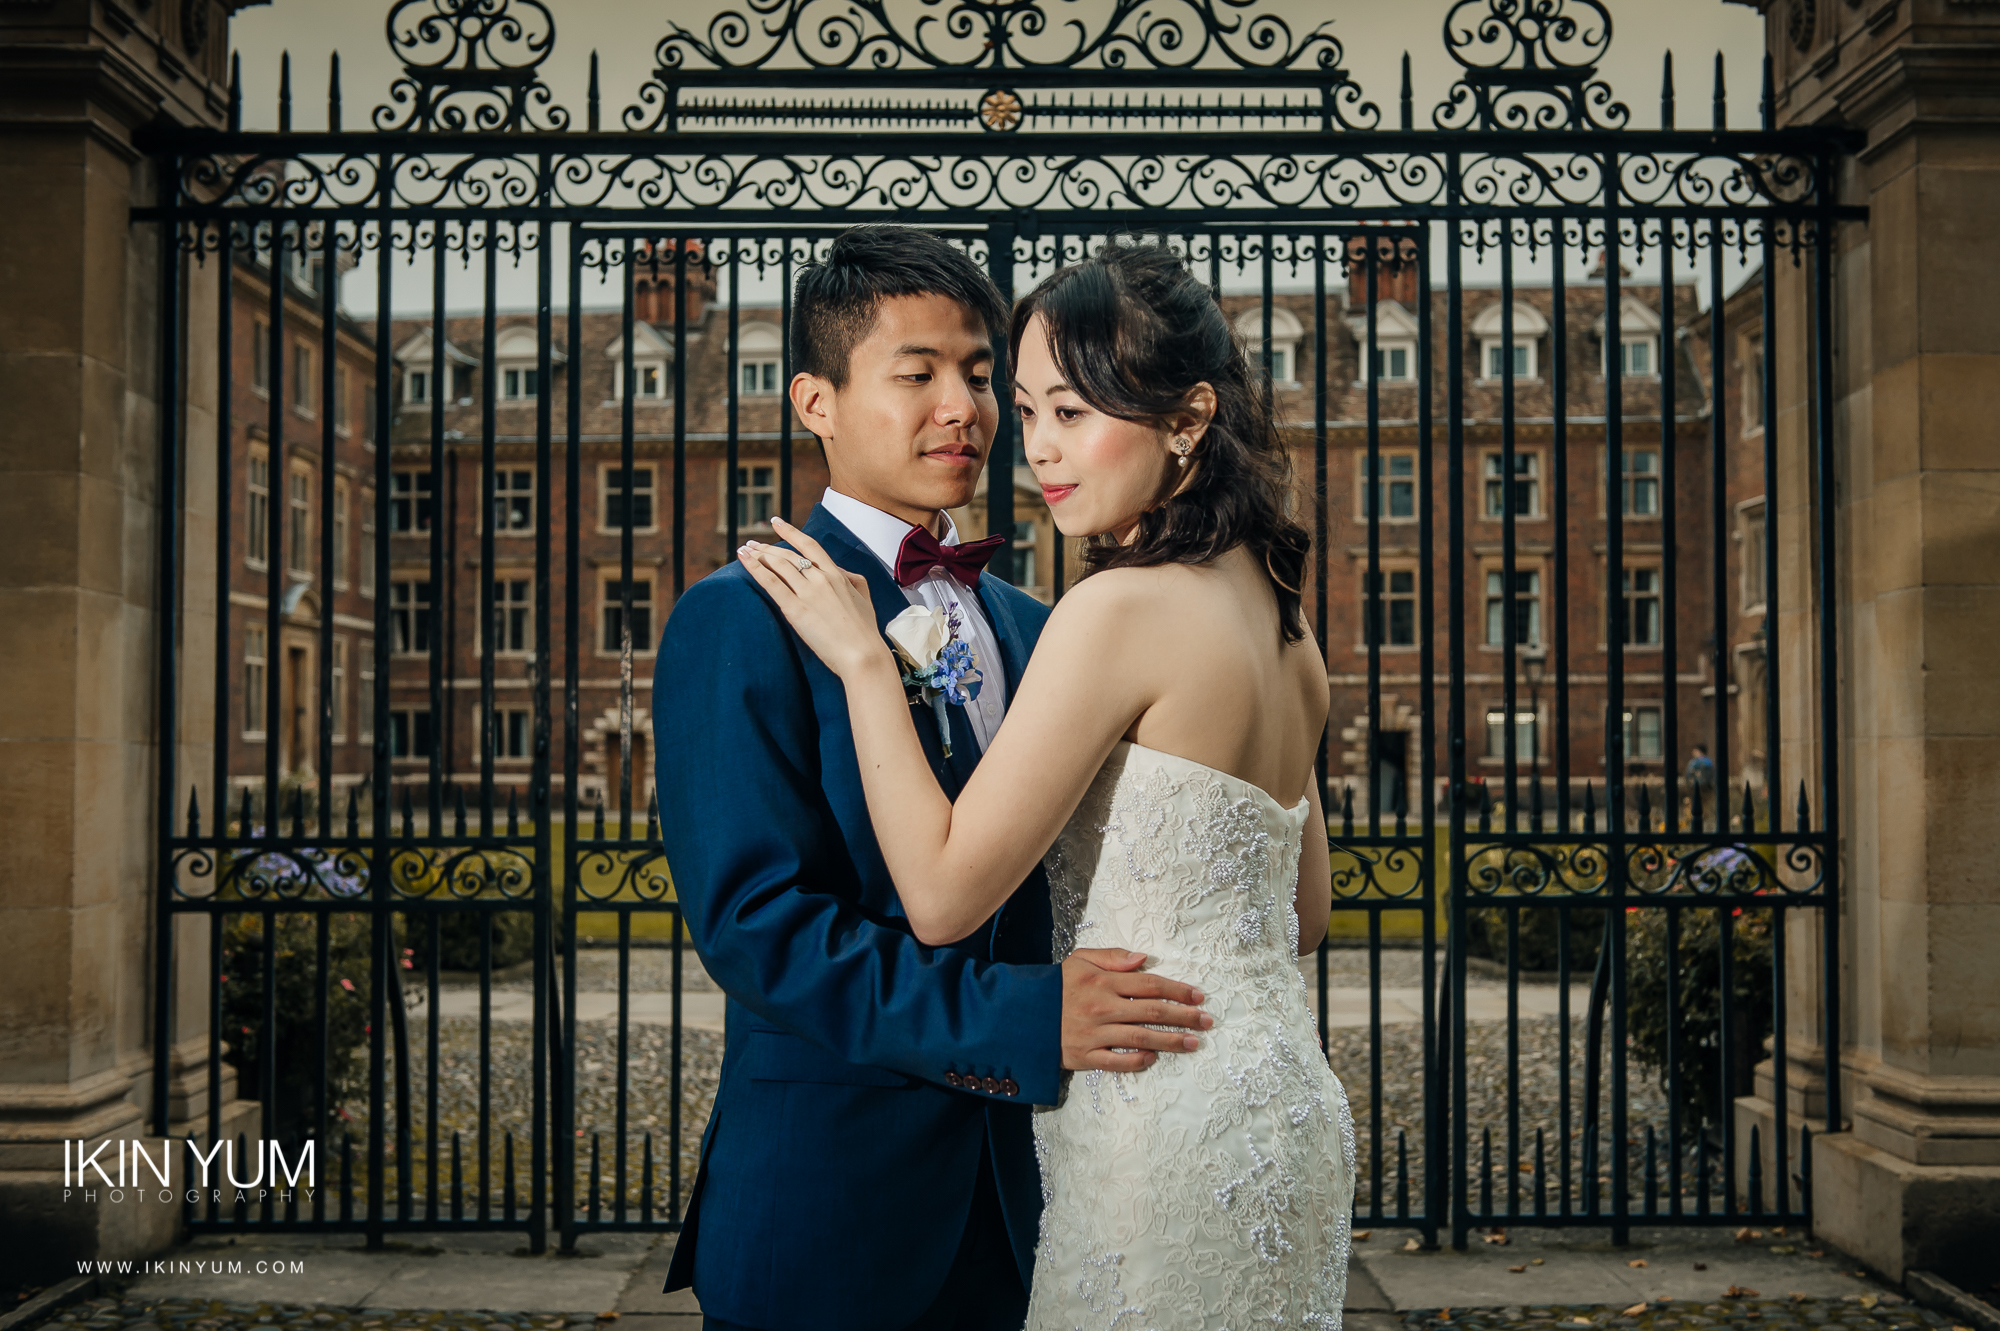 Chloe & Carlos Pre-Wedding Shoot- Ikin Yum Photography-0078.jpg